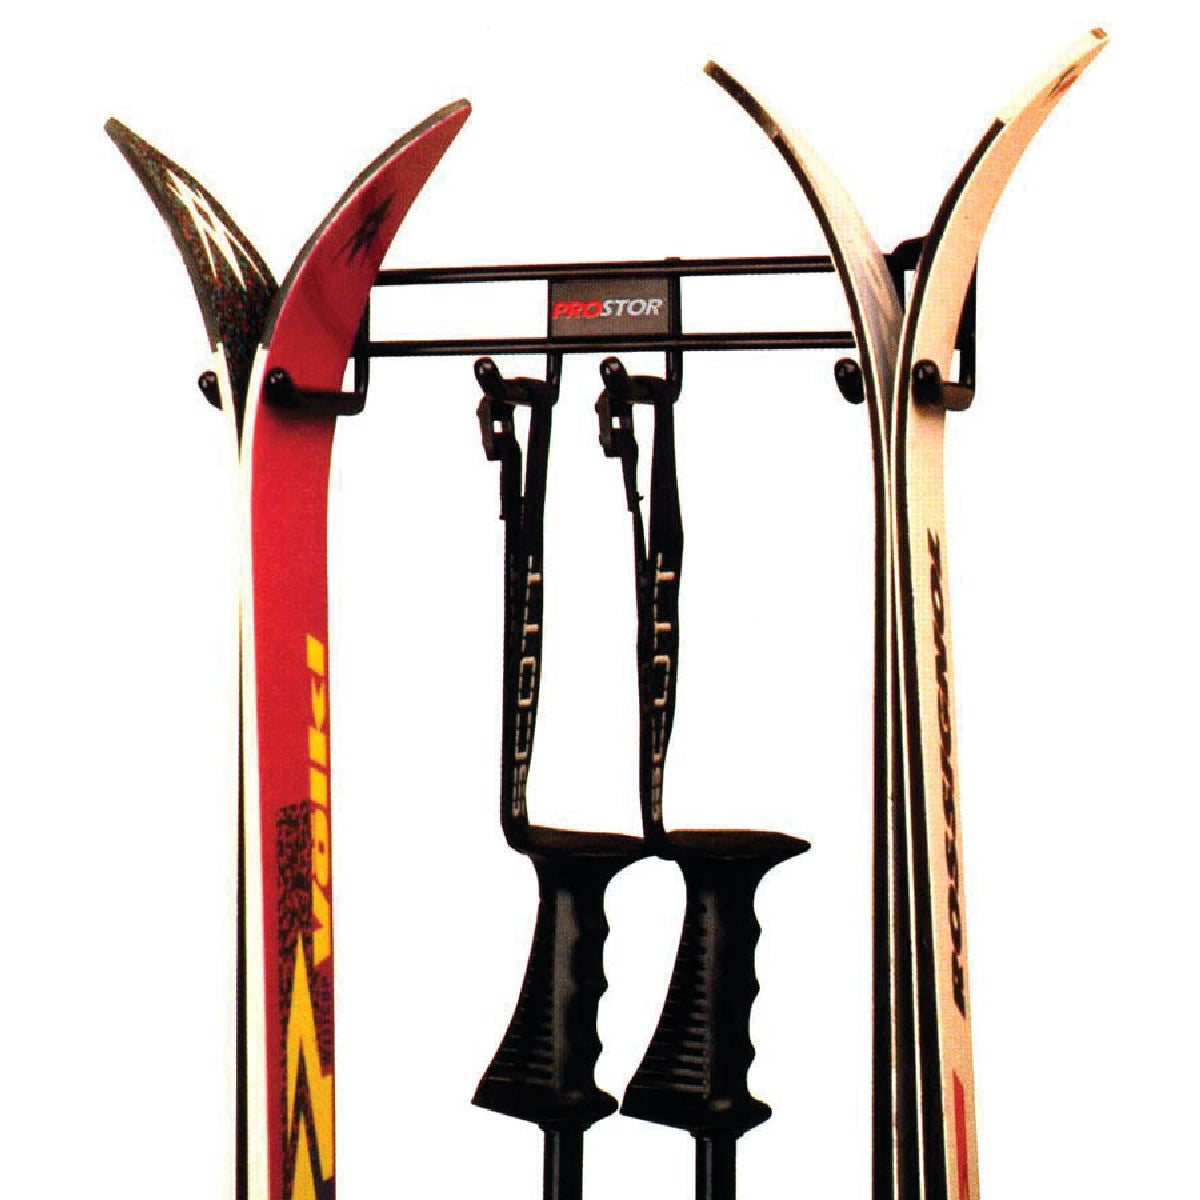 DOUBLE SKI/POLE RACK - PS2R by Itw Brands